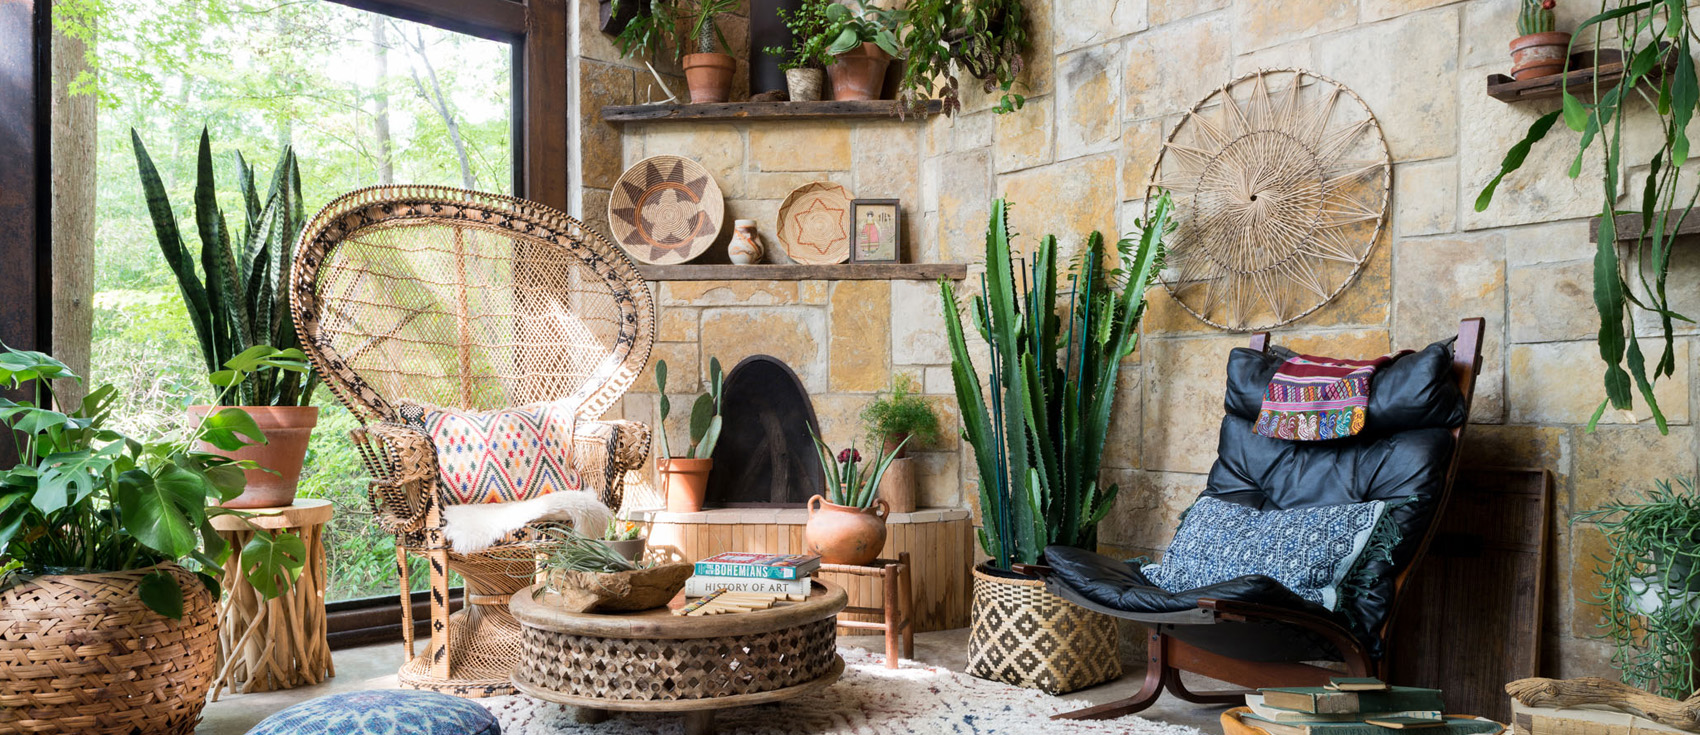 Bohemian Decor | Boho Decorating Ideas| Buyer Select